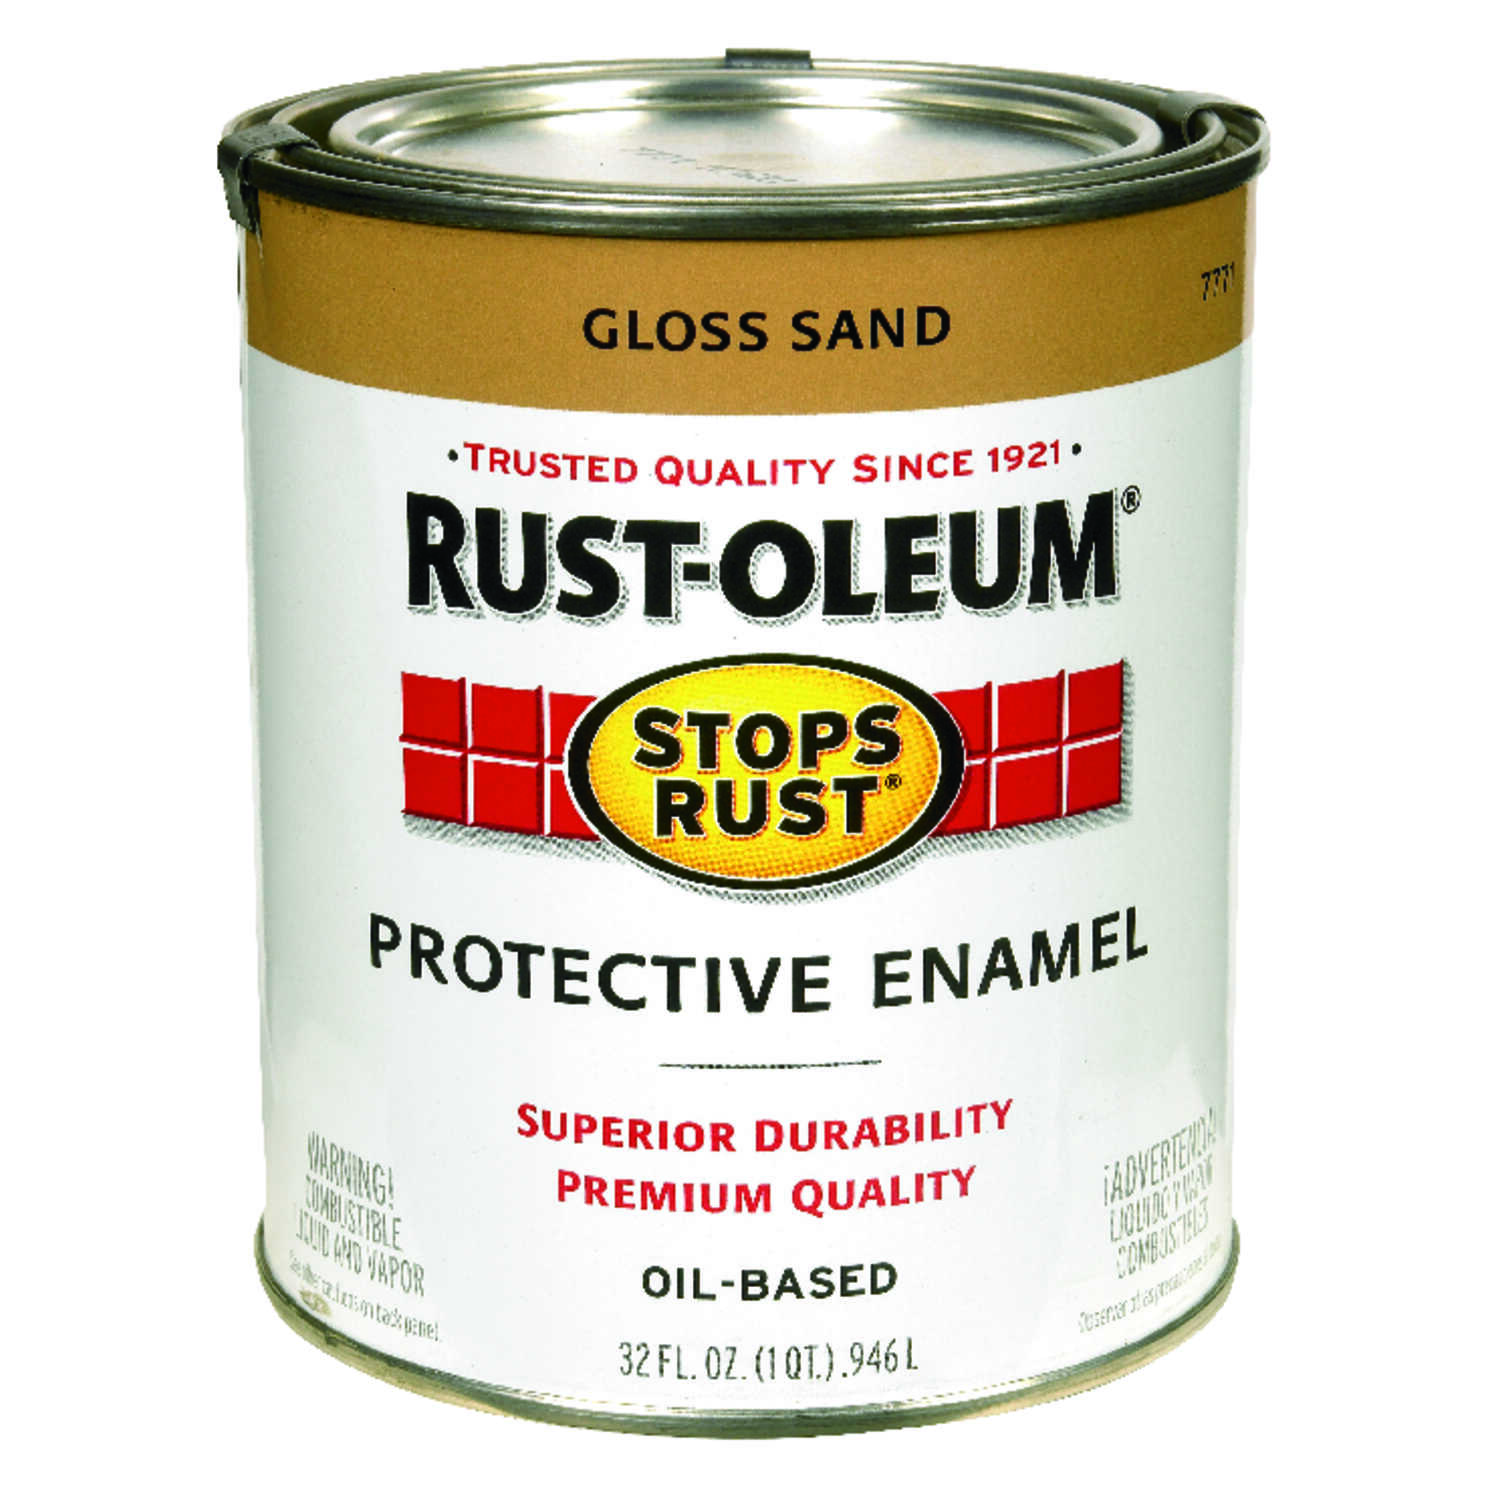 Rust-Oleum  Gloss  Sand  Protective Enamel  1 qt. Indoor and Outdoor